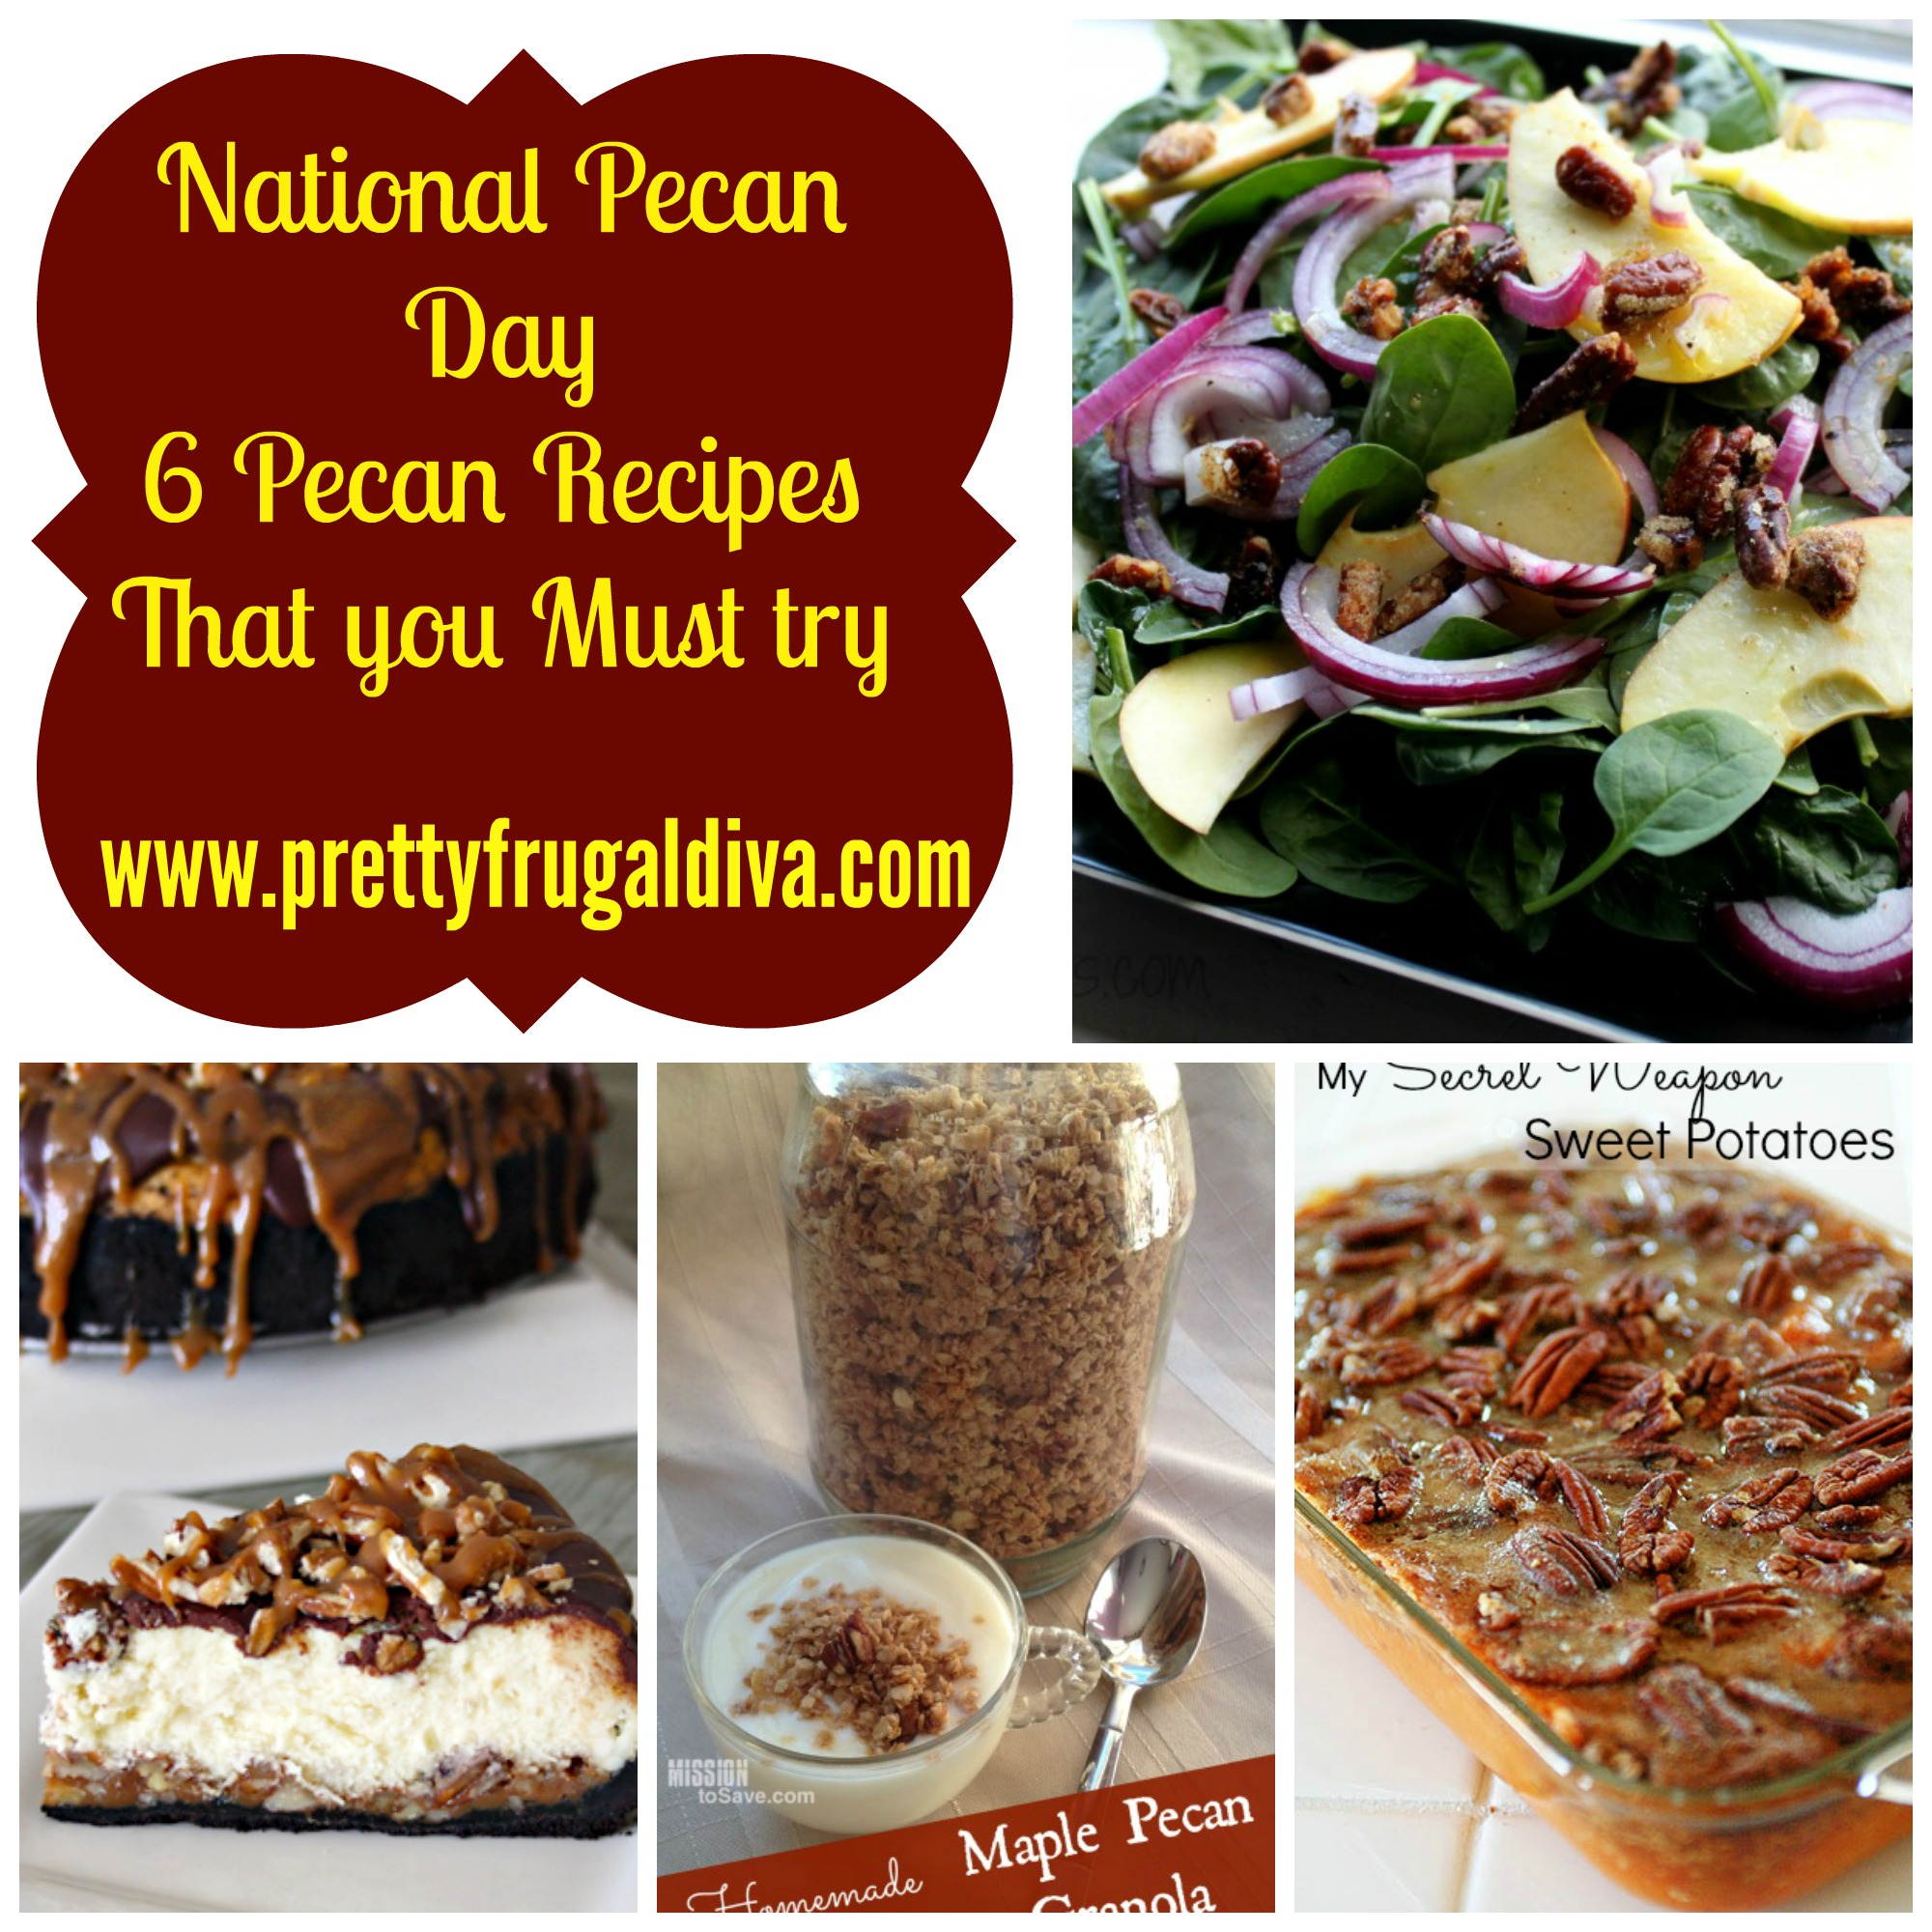 National Pecan Day: 6 Recipes You Should Try